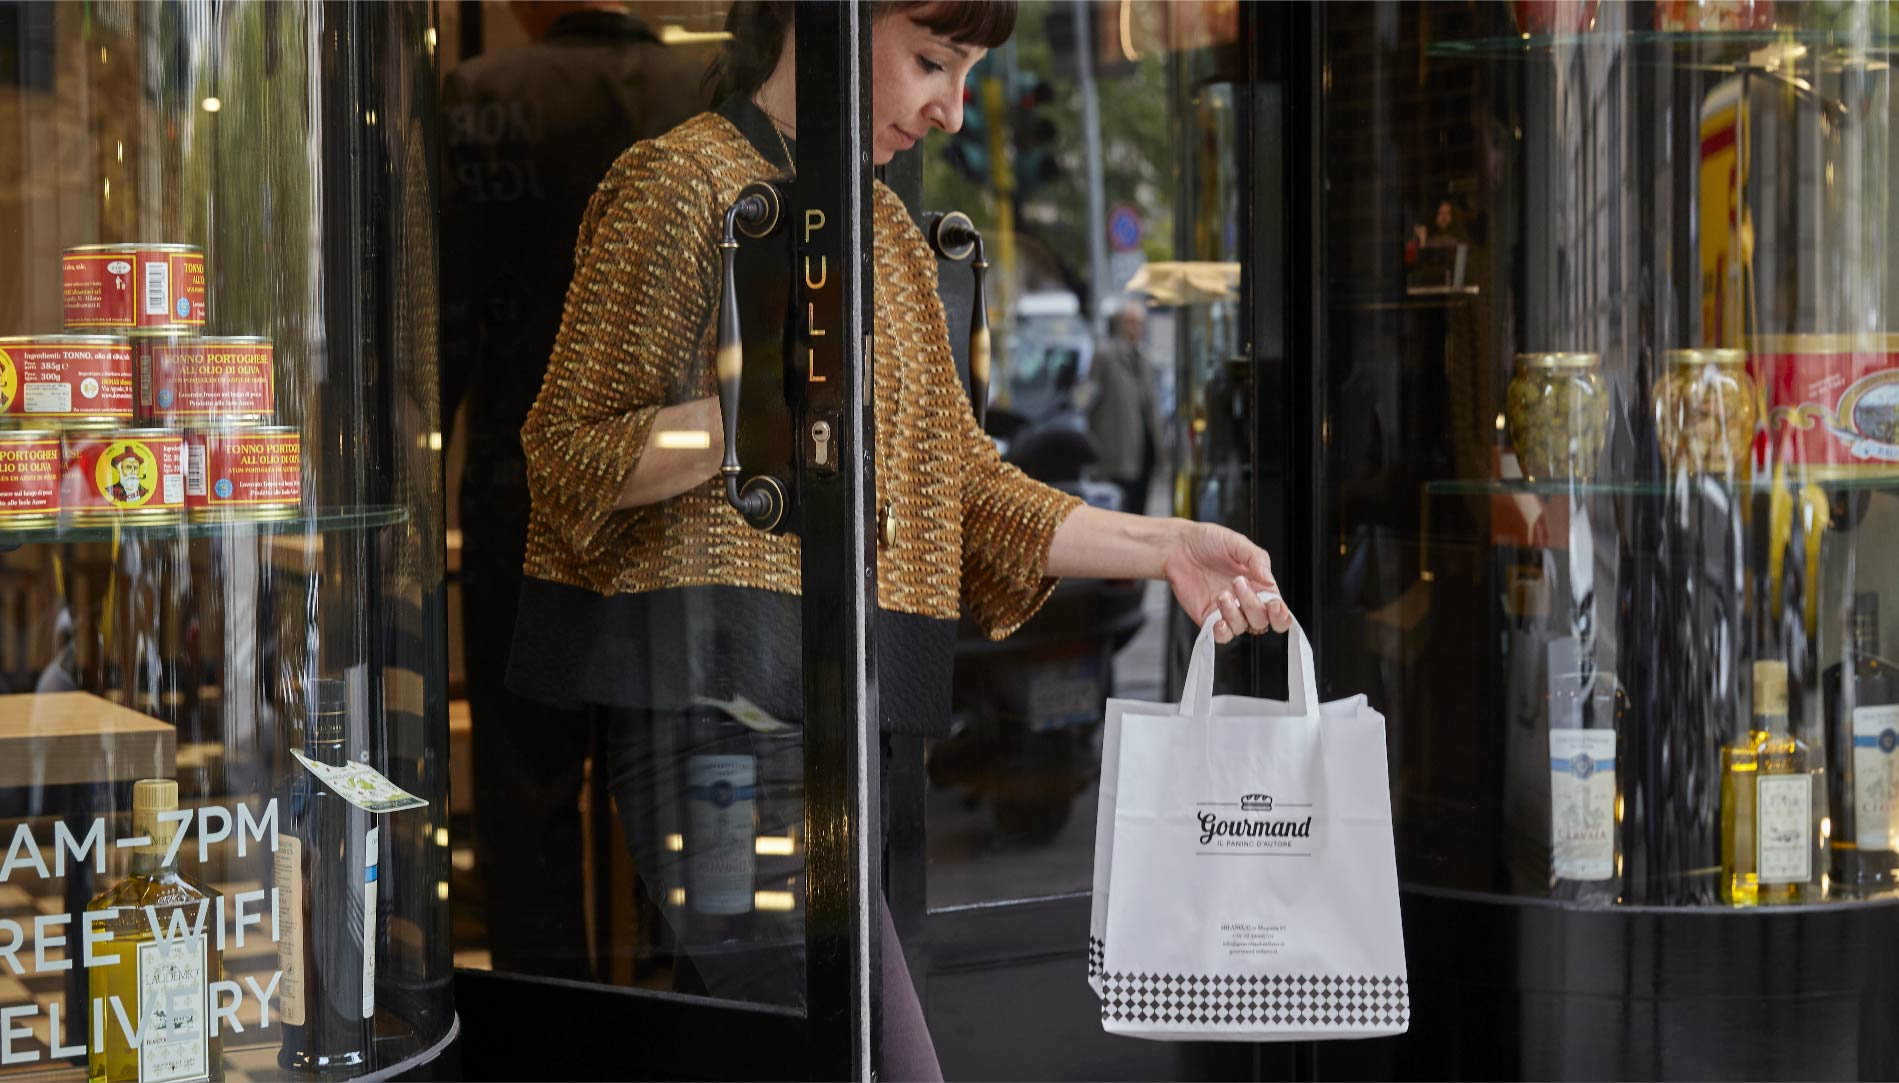 09-Gourmand-panino-autore-shopper